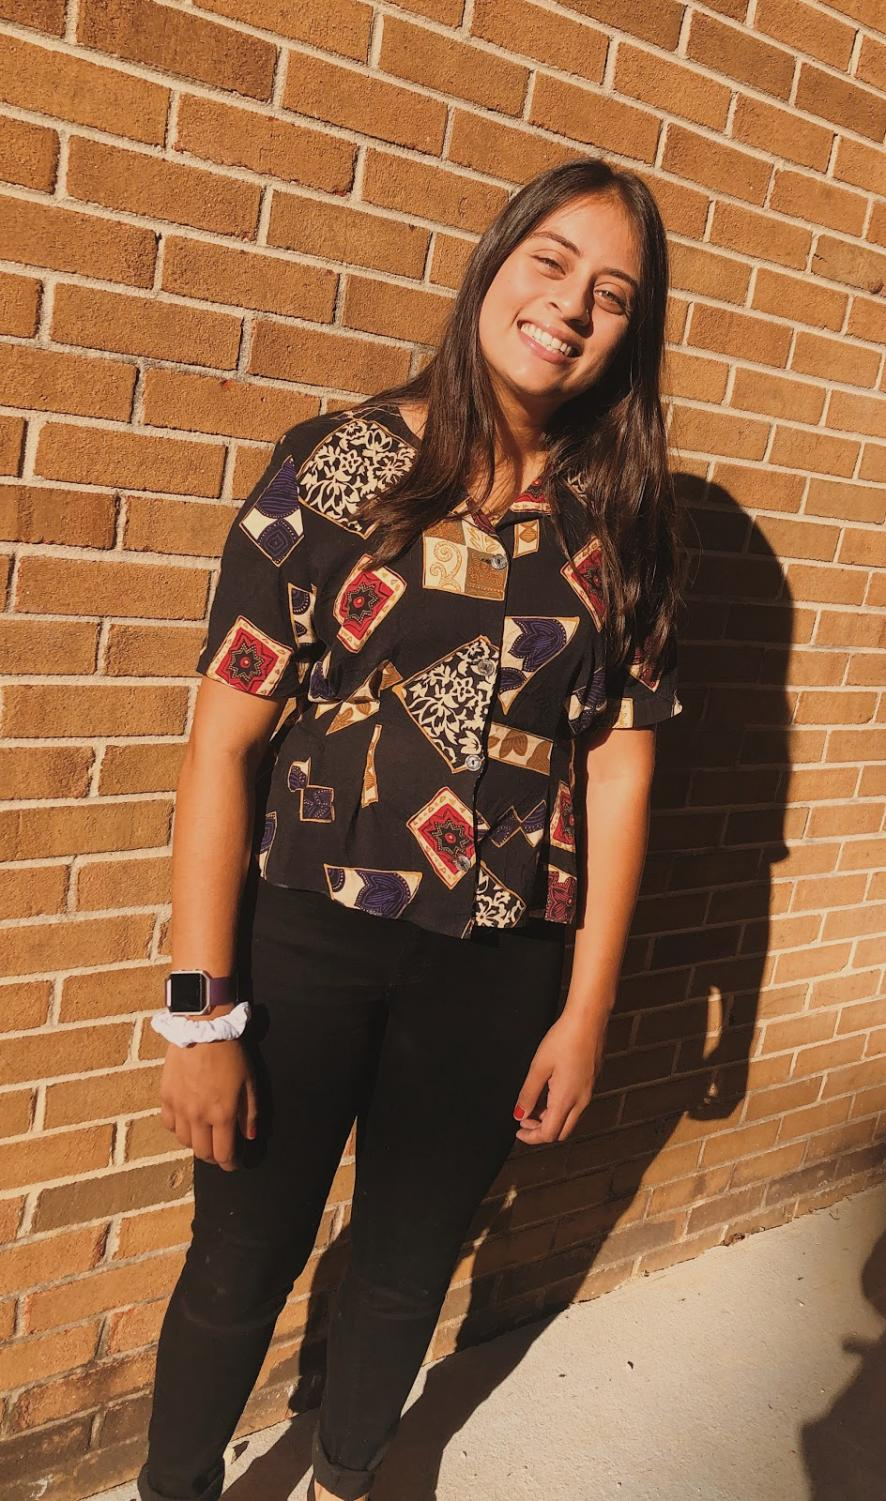 Kushi Zaver wears her upcycled shirt  that was originally an old dress.